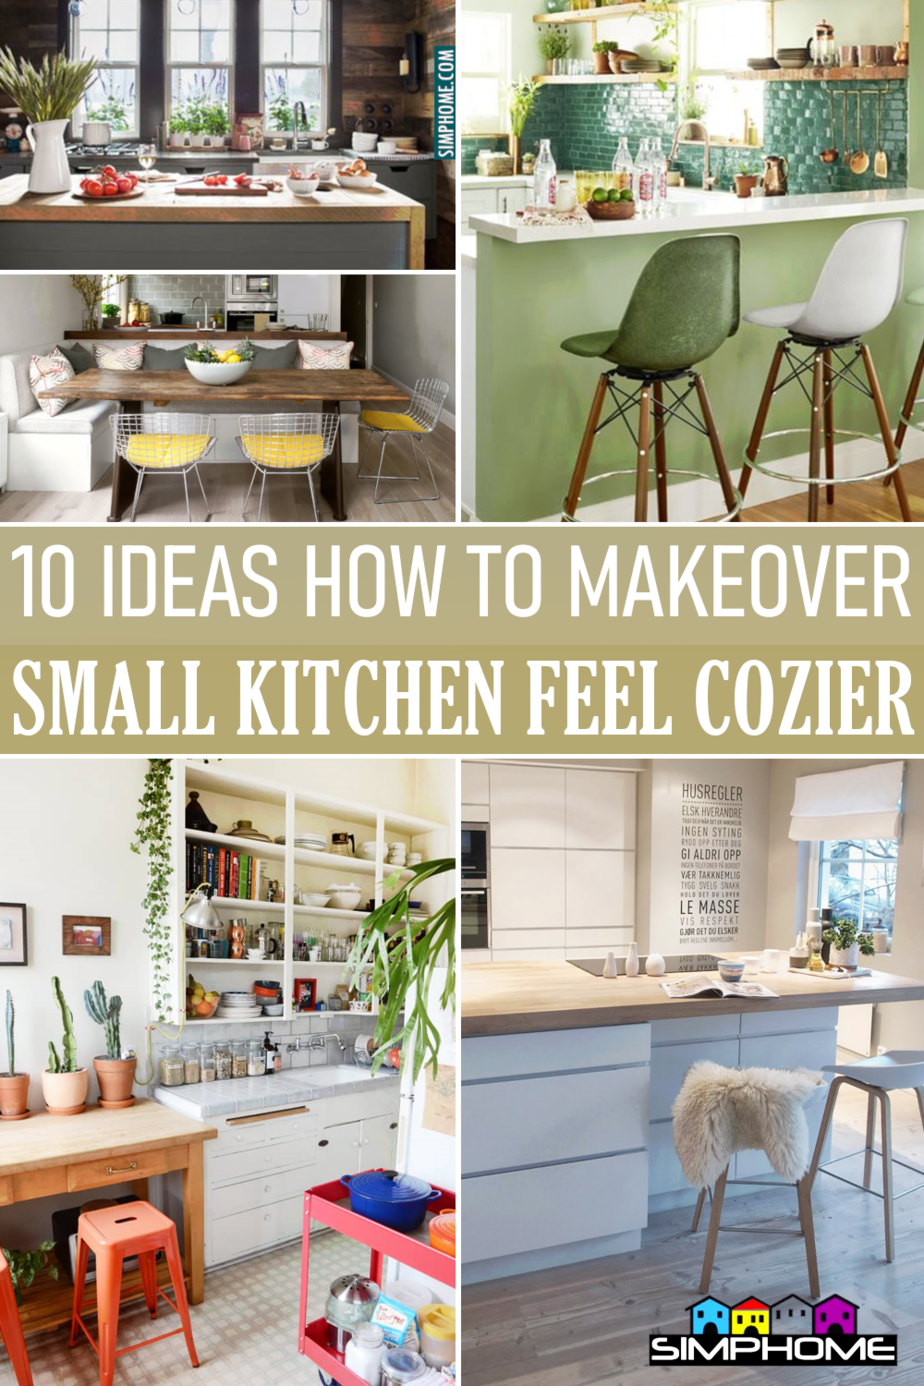 10 Ideas on How to Turn Your Small Kitchen Cozier via Simphome.comFeatured